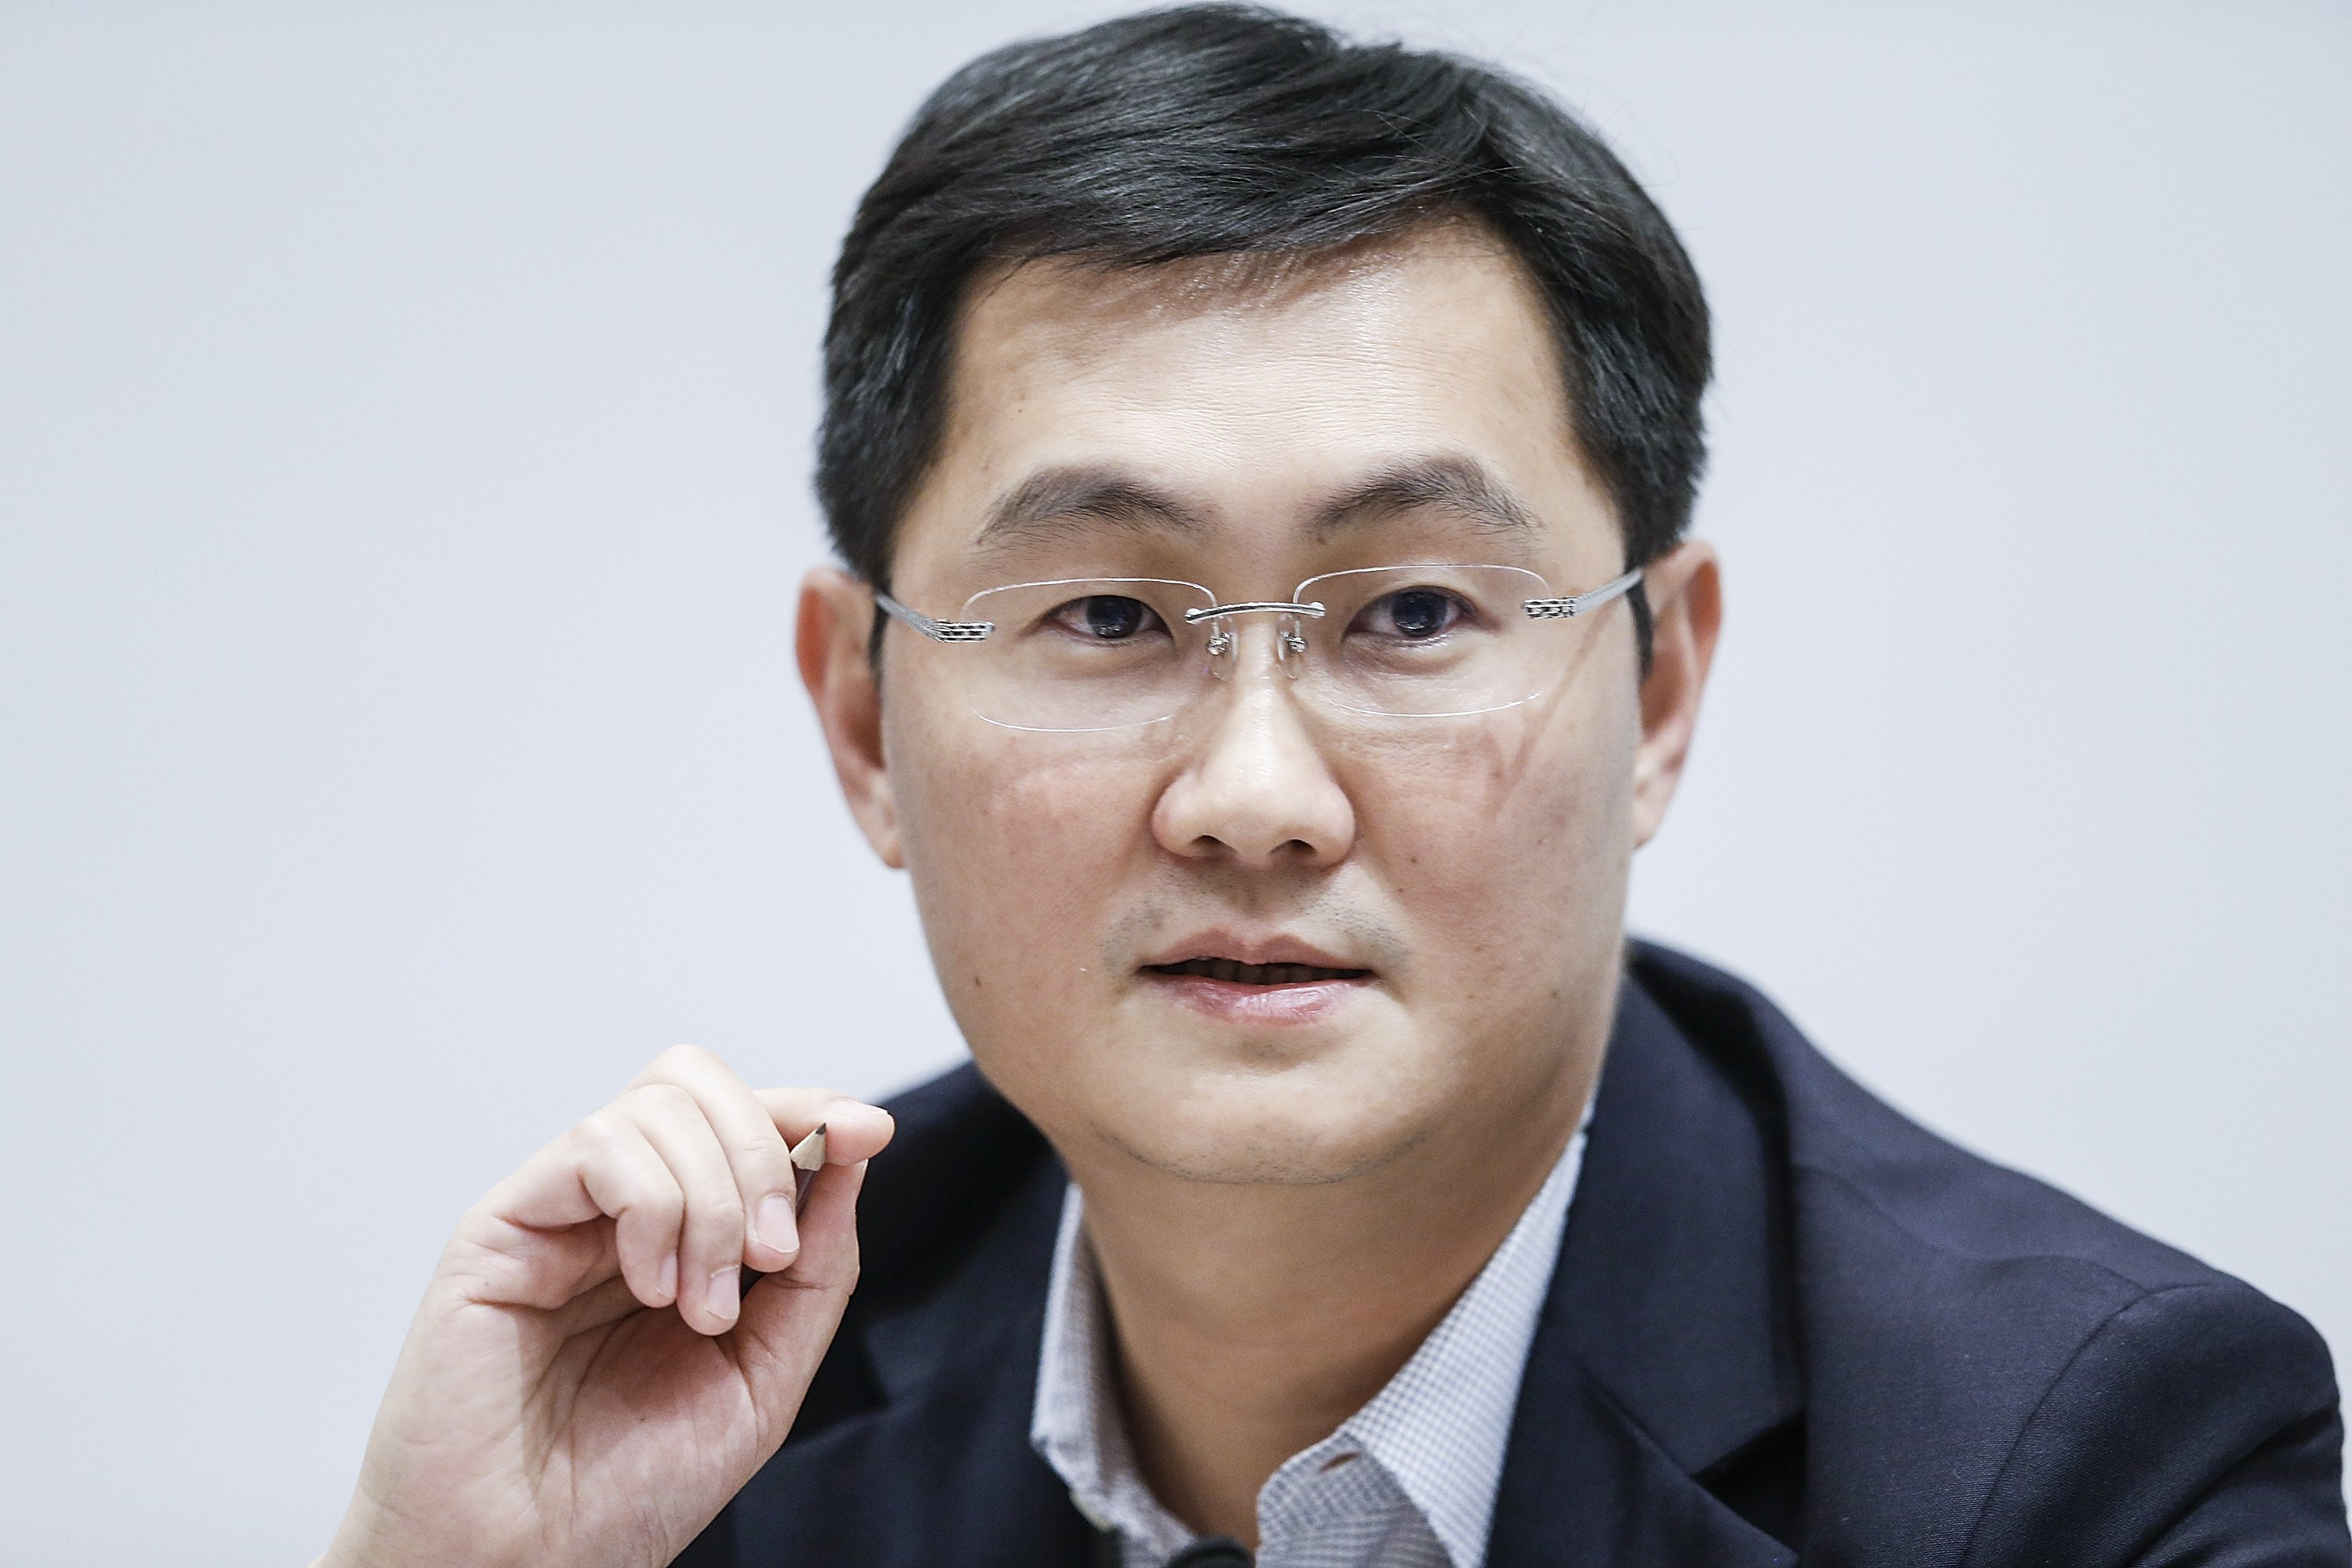 Pony' Ma Huateng, chairman and chief executive officer of Tencent Holdings Ltd., speaks at a news conference